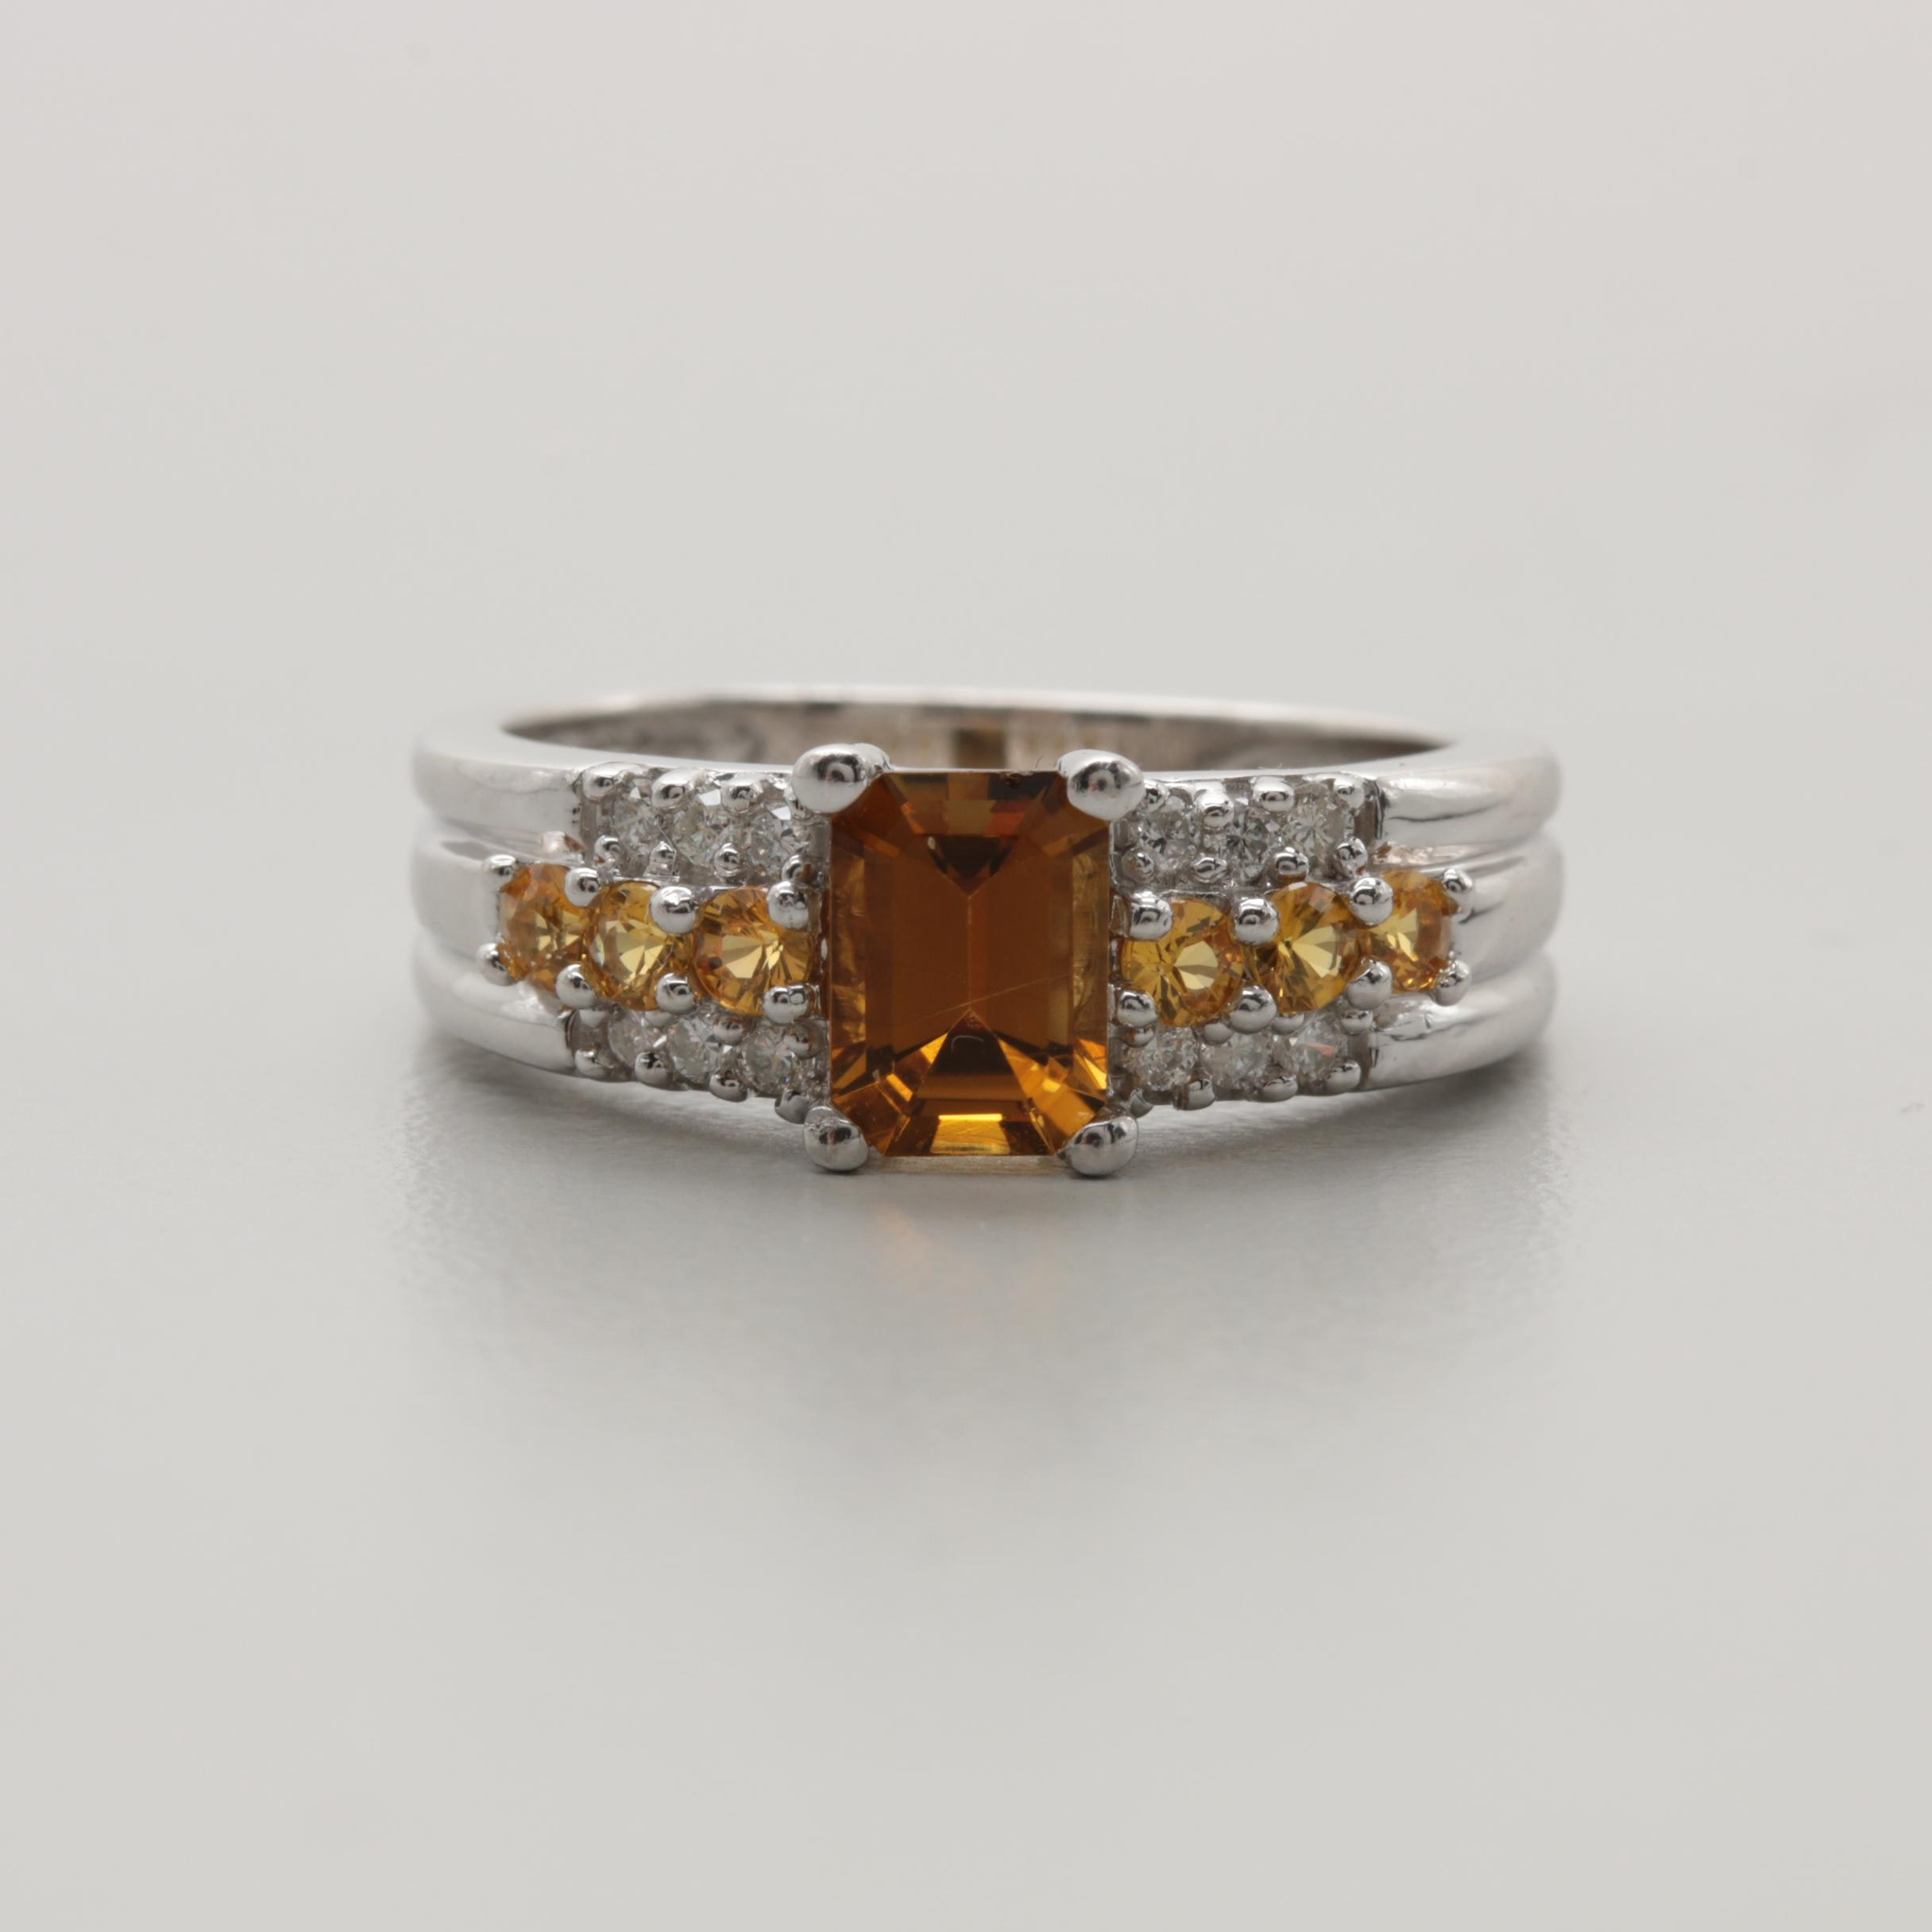 14K White Gold Andalusite, Yellow Sapphire, and Diamond Ring